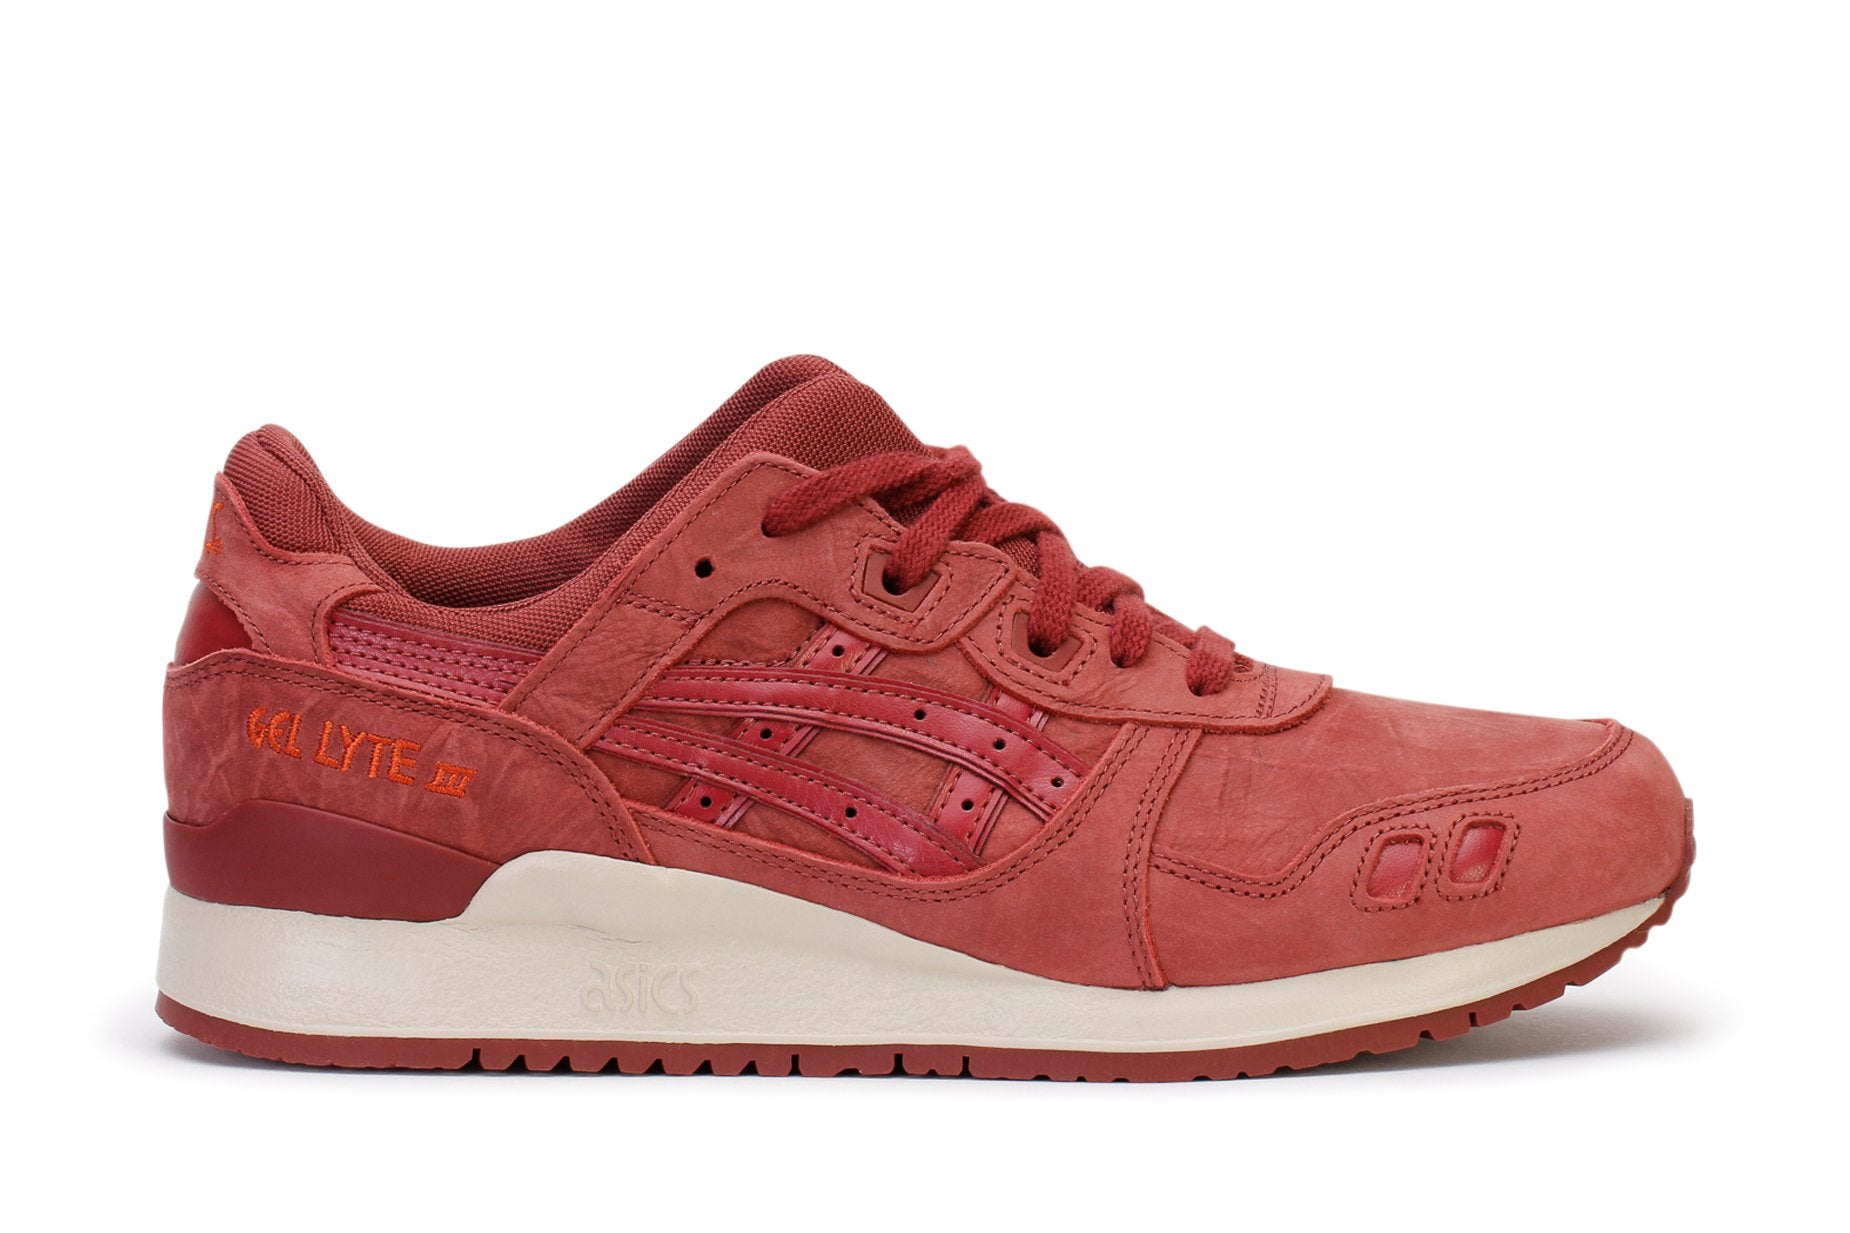 Asics Tiger Men's Sneakers Gel-Lyte III Russet Brown Russet Brown HL7V3-2626